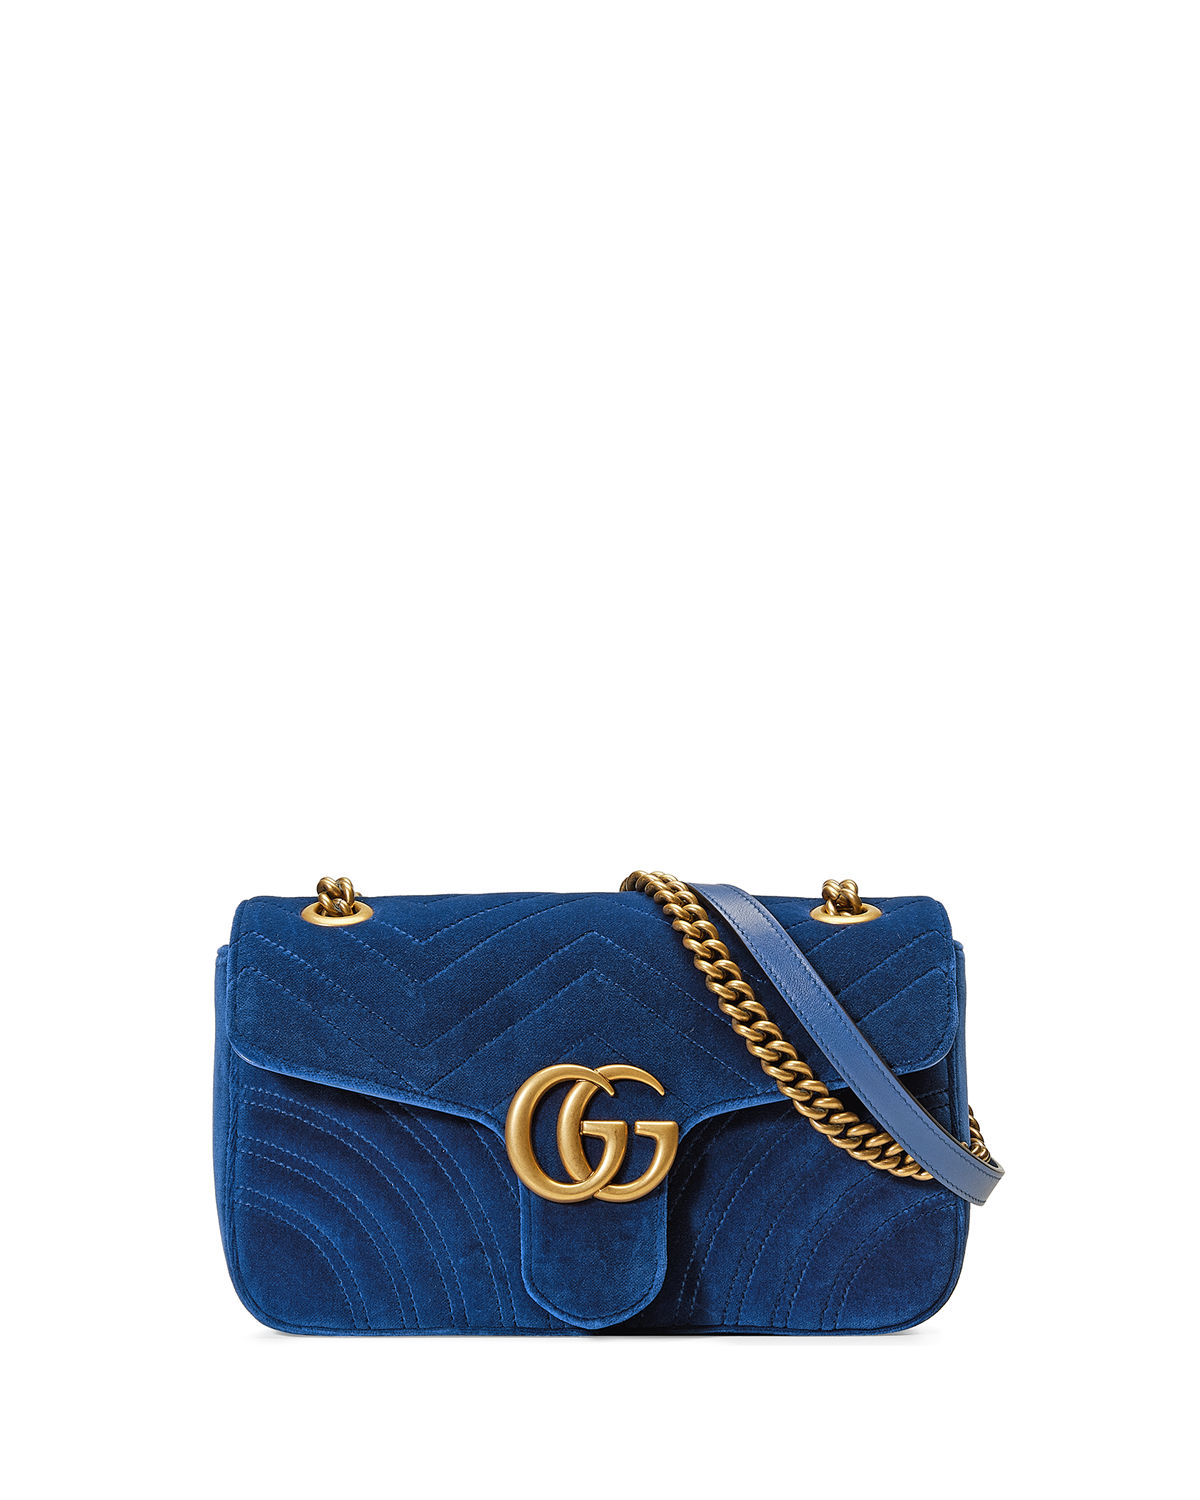 a205a14331e Gucci GG Marmont Small Quilted Velvet Crossbody Bag   Neiman Marcus